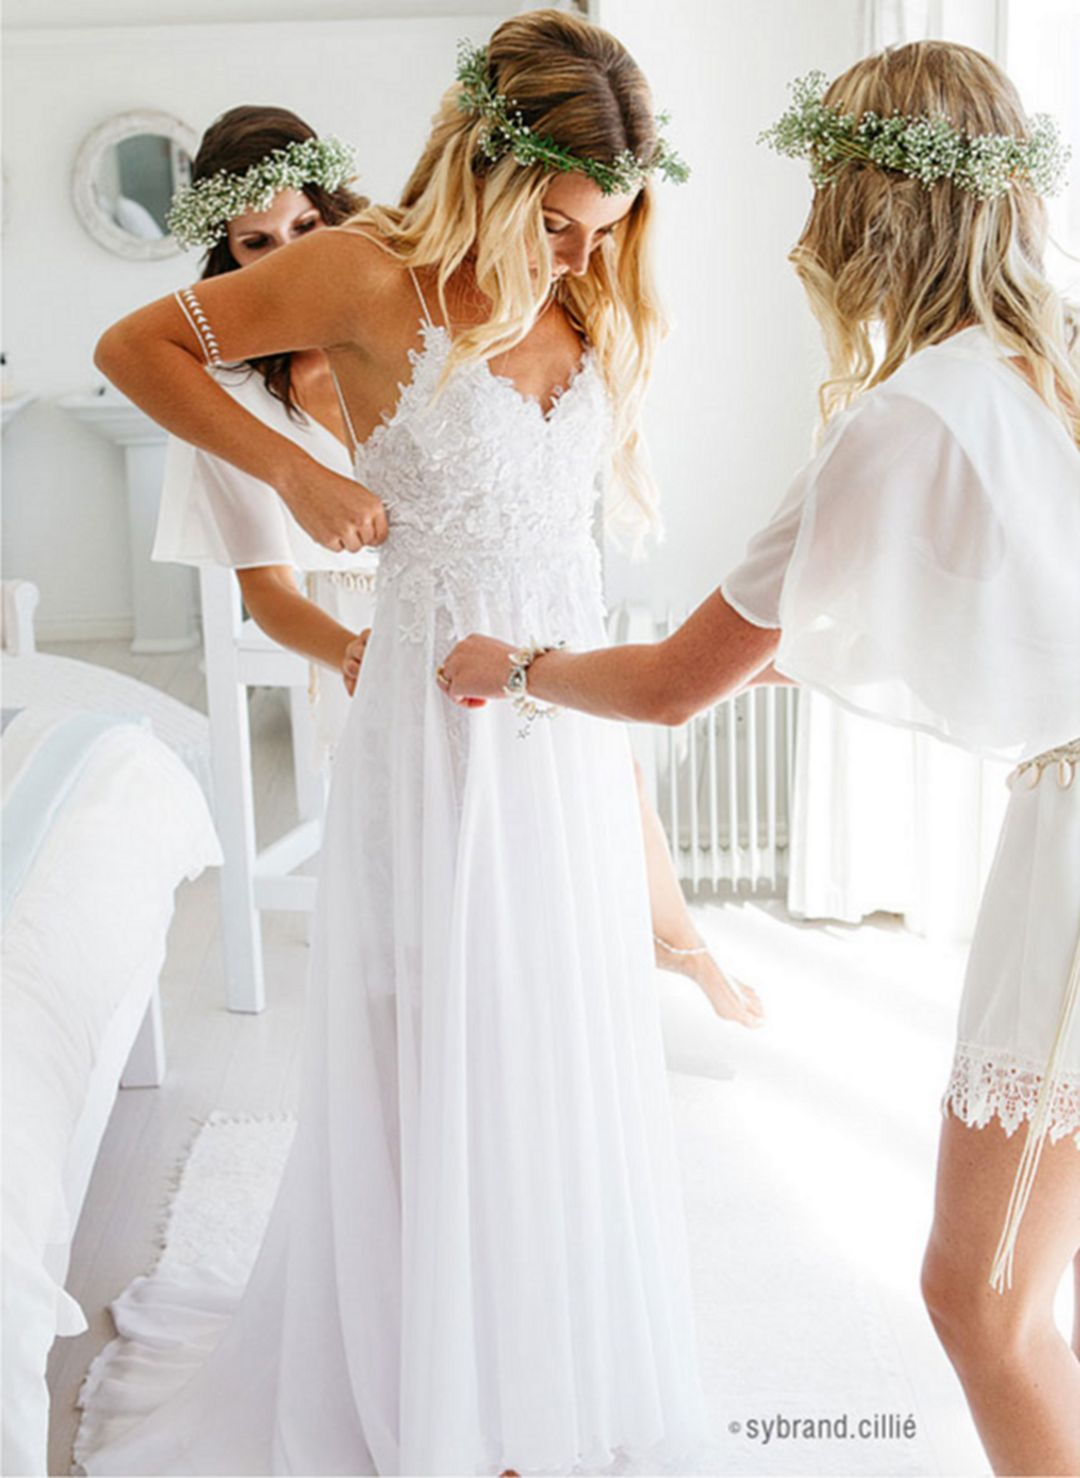 Adorable 40 Elegant Beach Wedding Dresses Ideas For Perfect Wedding Https Oosile Com 40 El Boho Style Wedding Dress Long Wedding Dresses Beach Wedding Dress